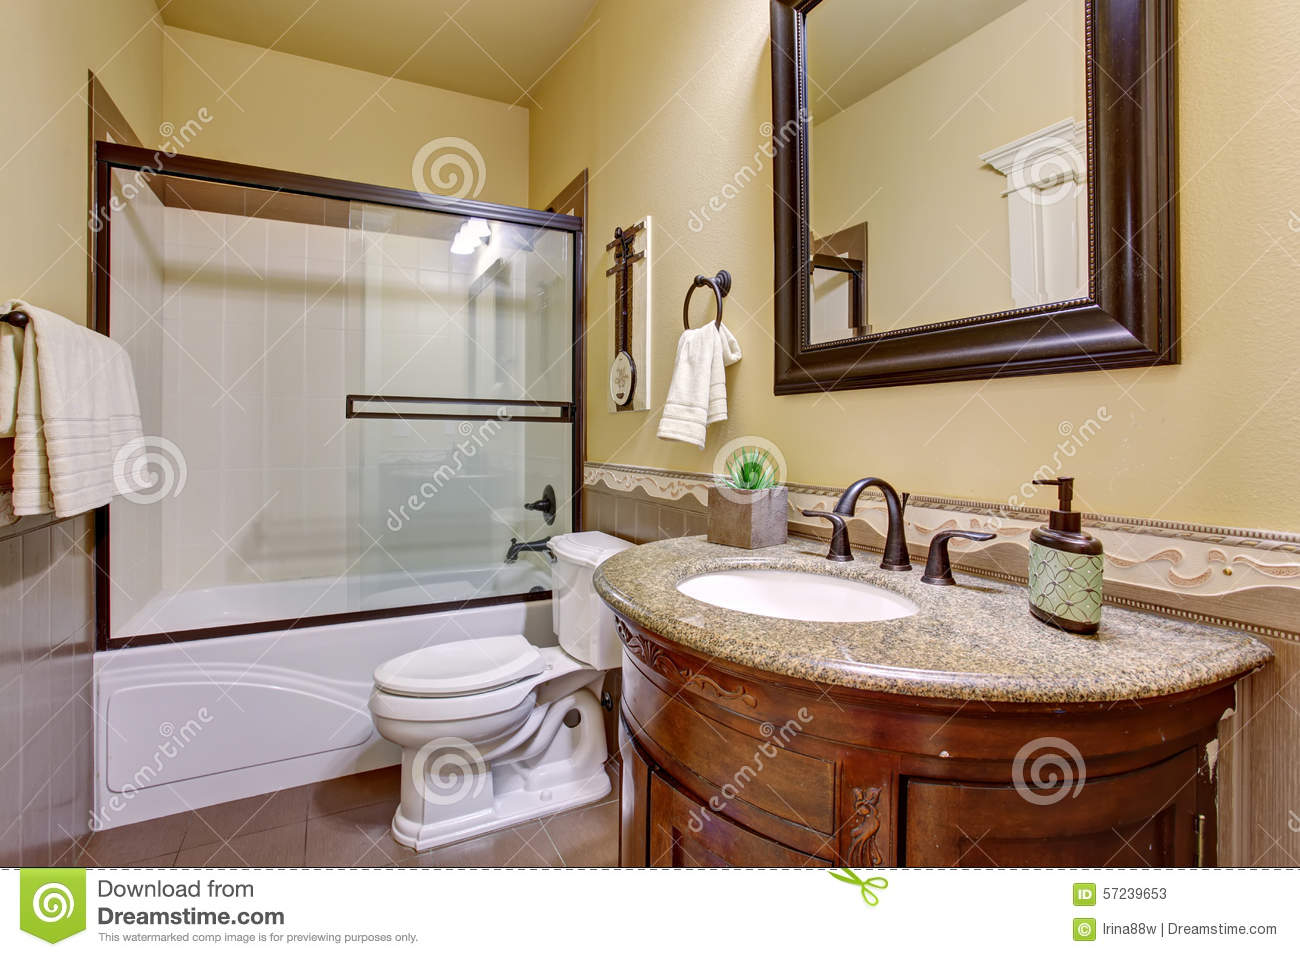 State Of The Art Bathroom With Glass Shower. Stock Image - Image of ...